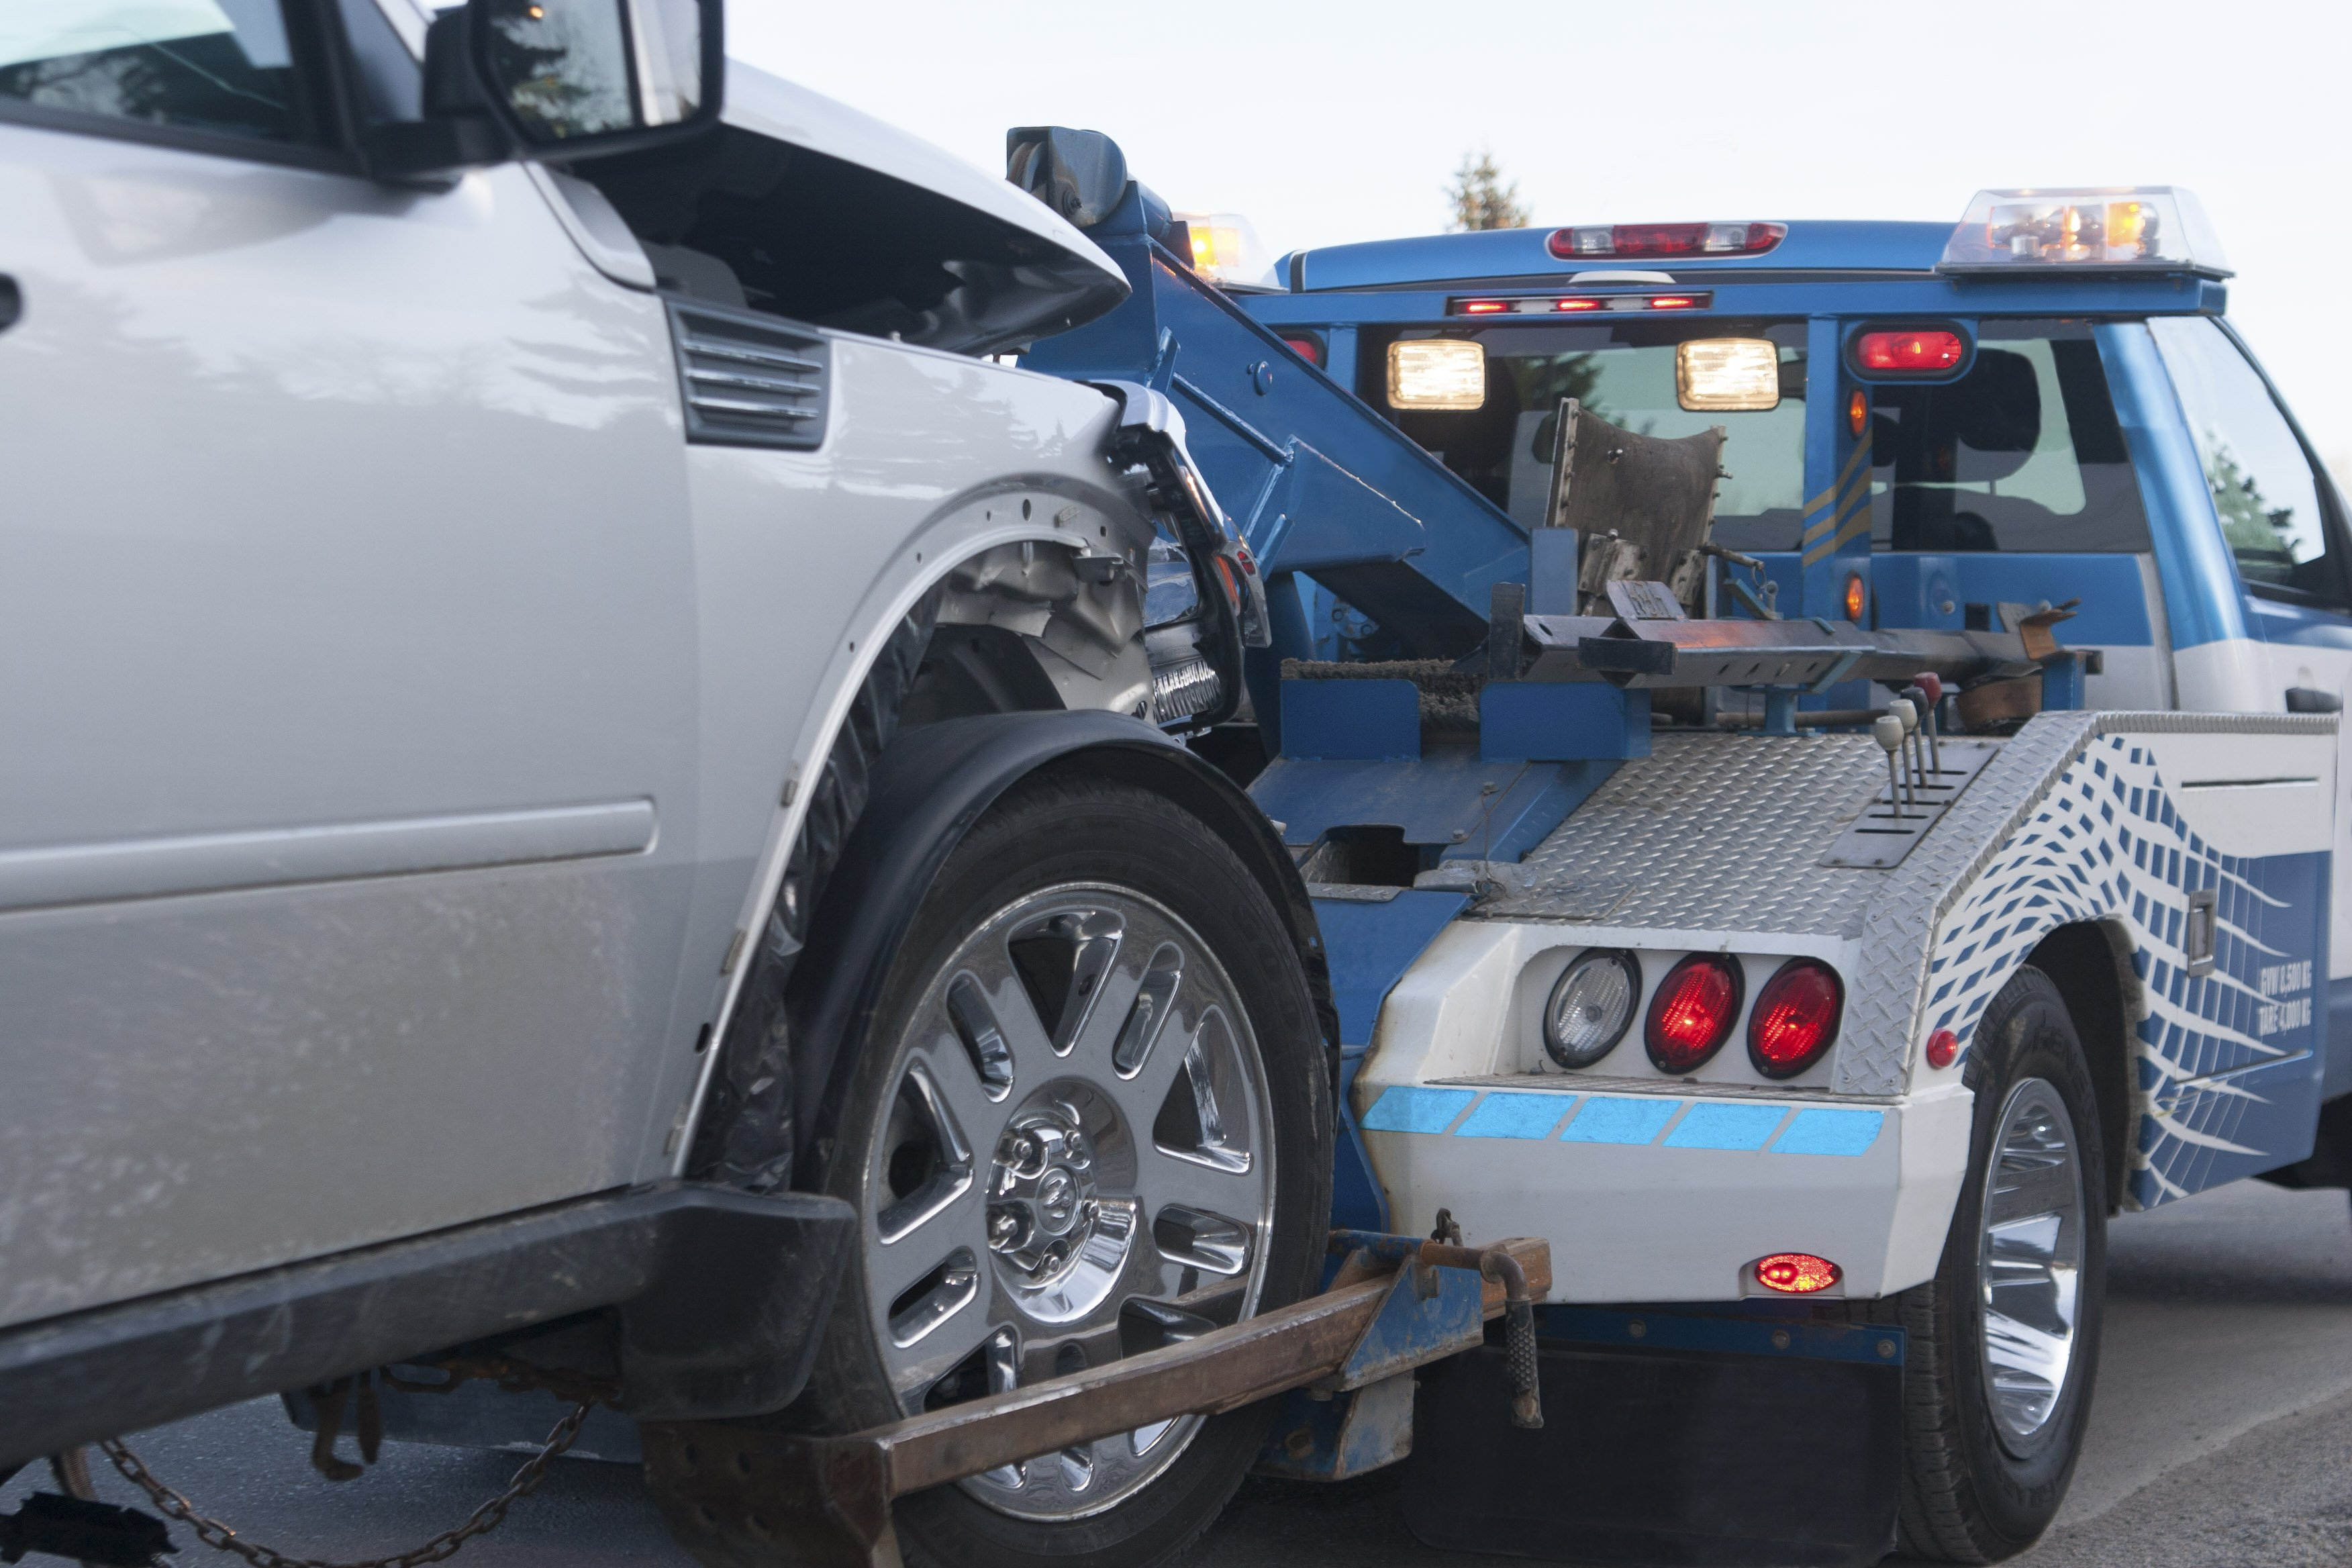 Towing Service Wrecker Service Recovery Service Diesel Service